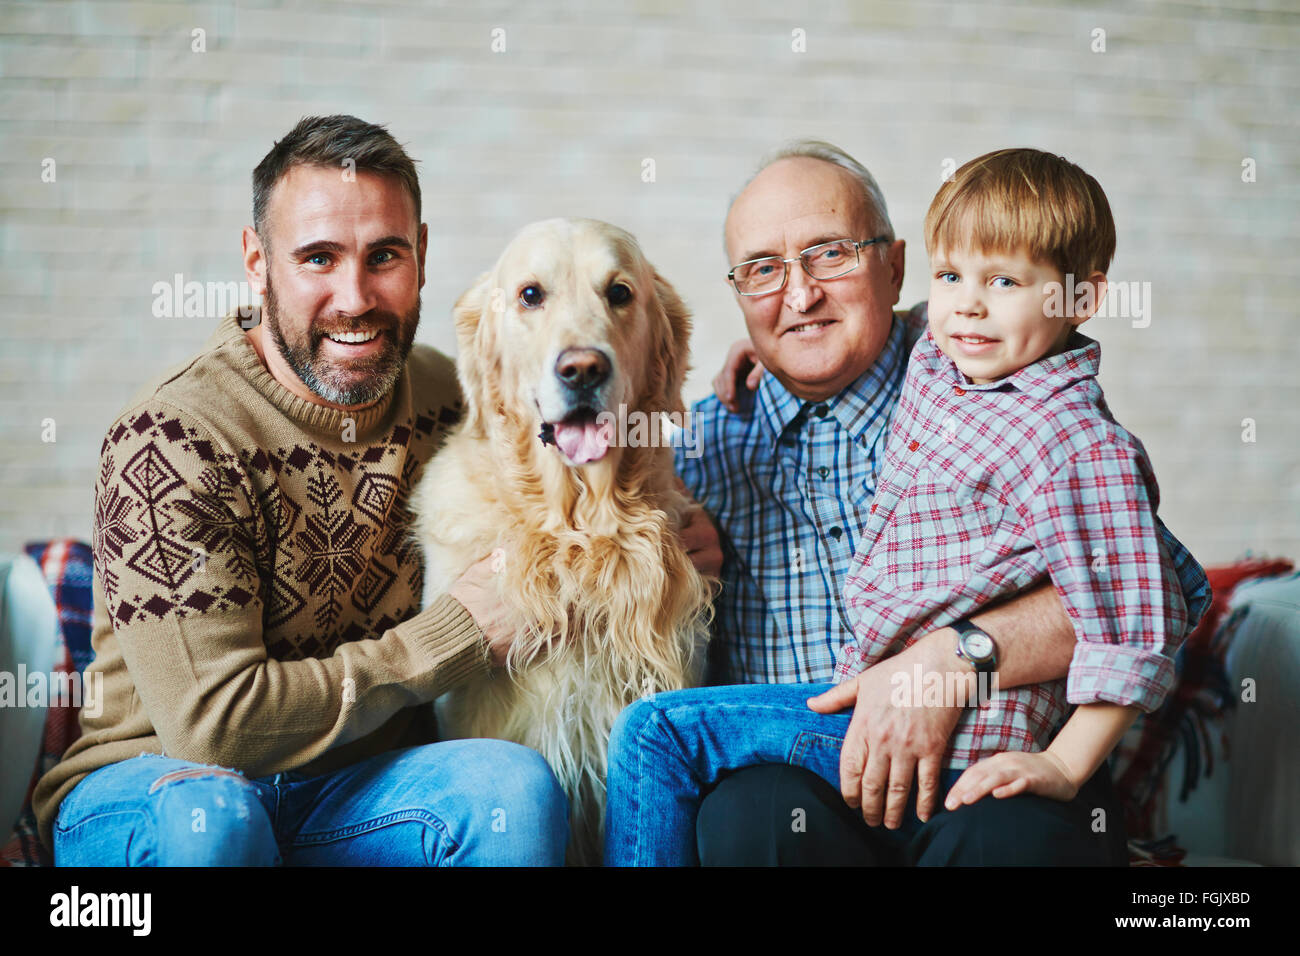 Mature man, young man, youngster and their pet looking at camera - Stock Image